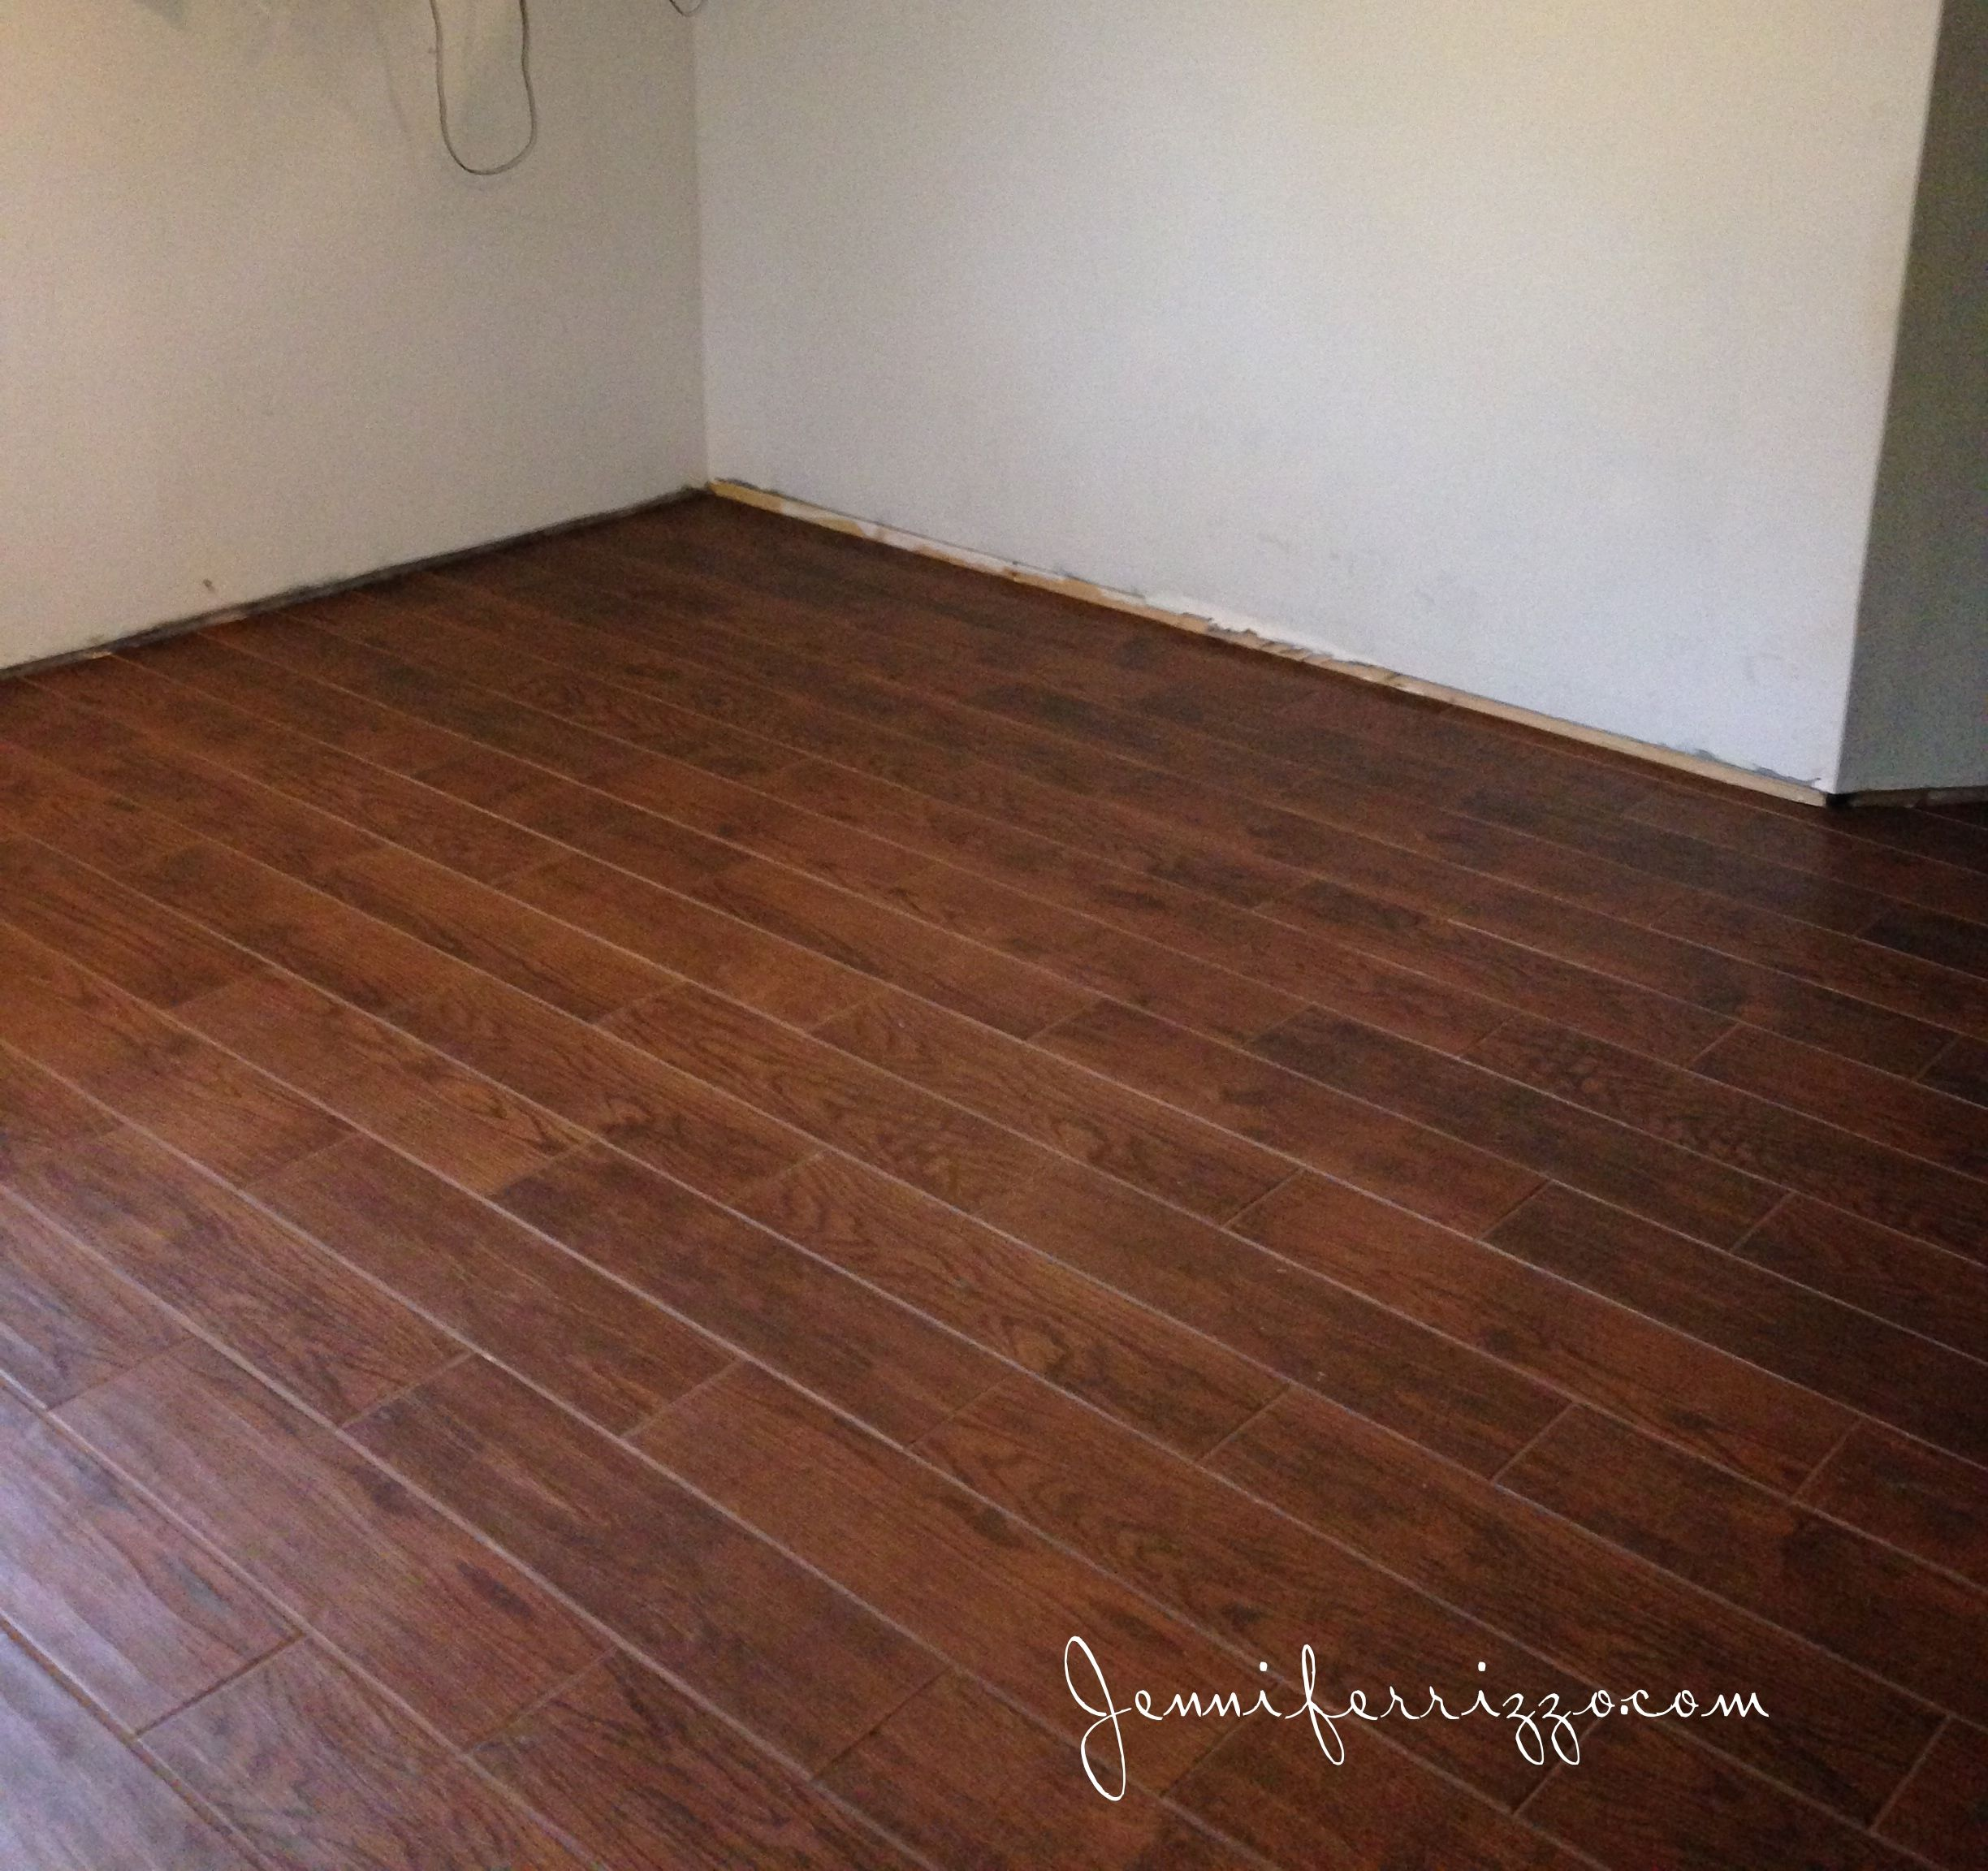 installation of our wood look ceramic tile from home depot in our